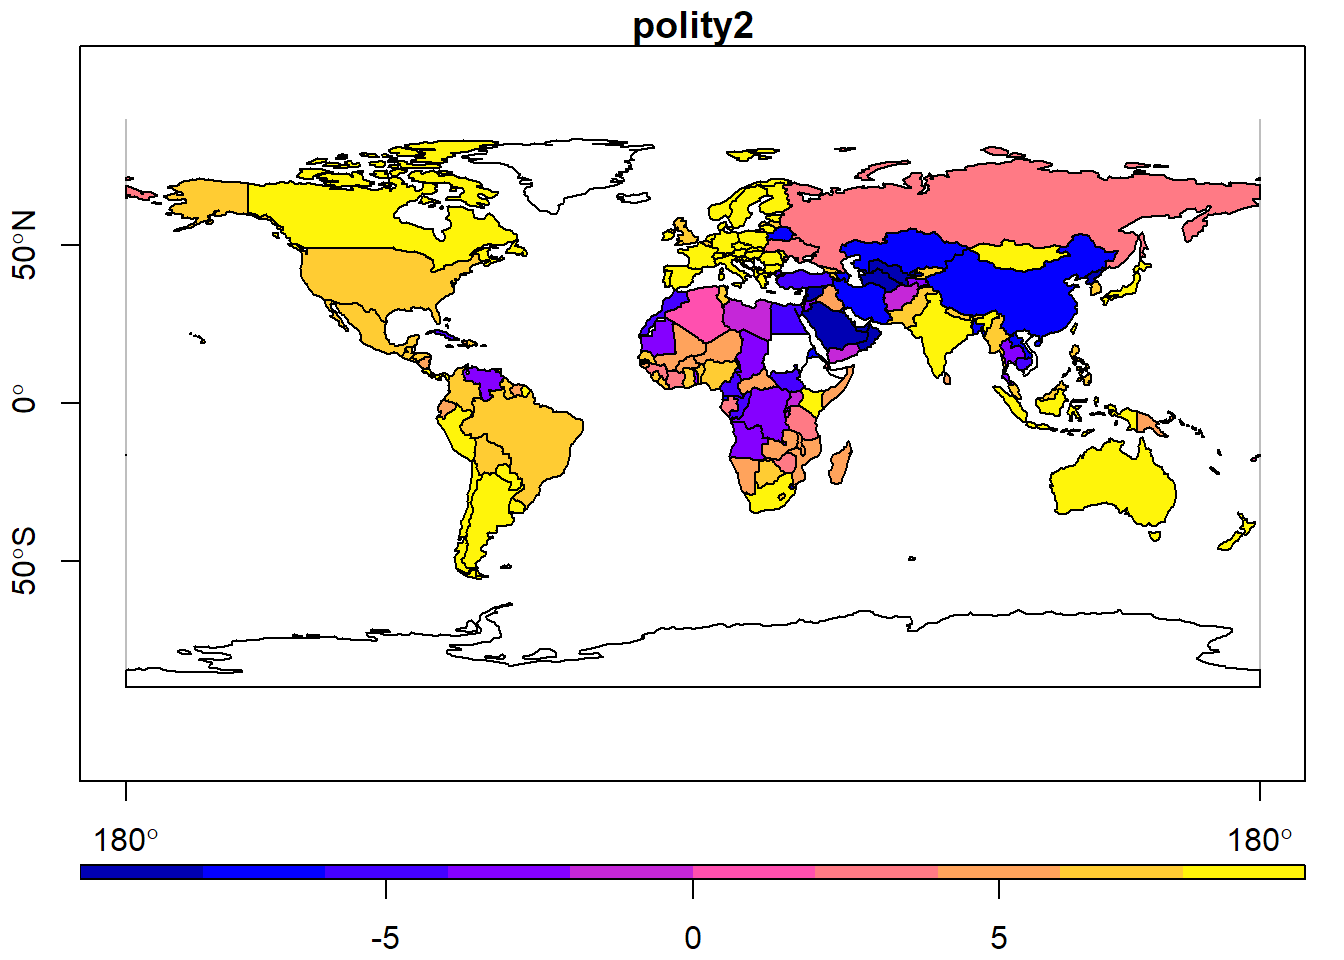 Global map of Systemic Center for Peace's Polity 5 primary 'polity2' composite metric. Raw Polity data is tabular, but depicted here using a choropleth.